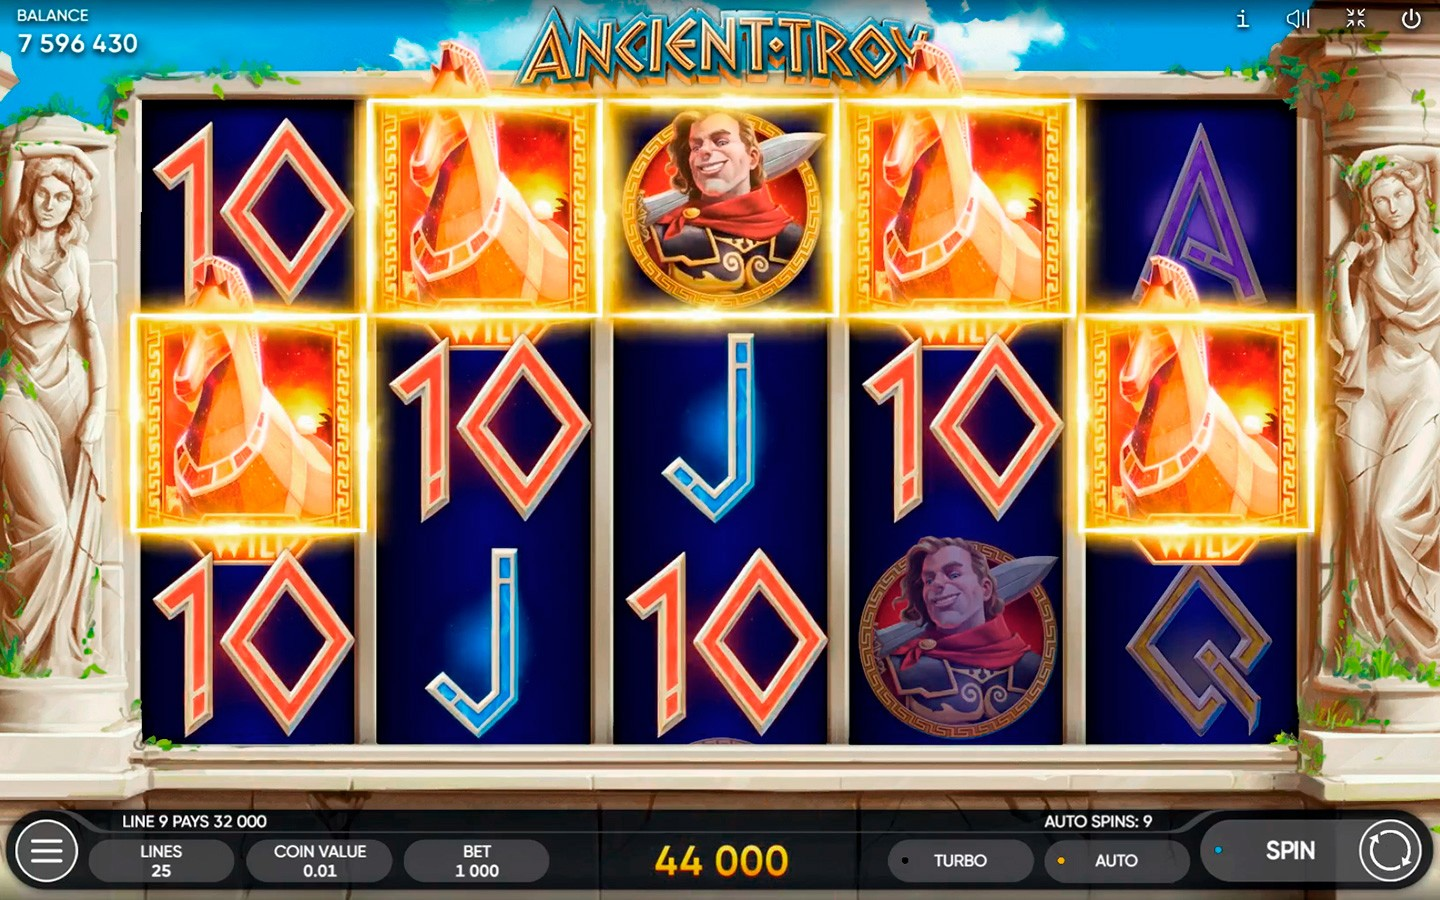 BEST ANCIENT GREEK SLOTS | Try ANCIENT TROY SLOT now!